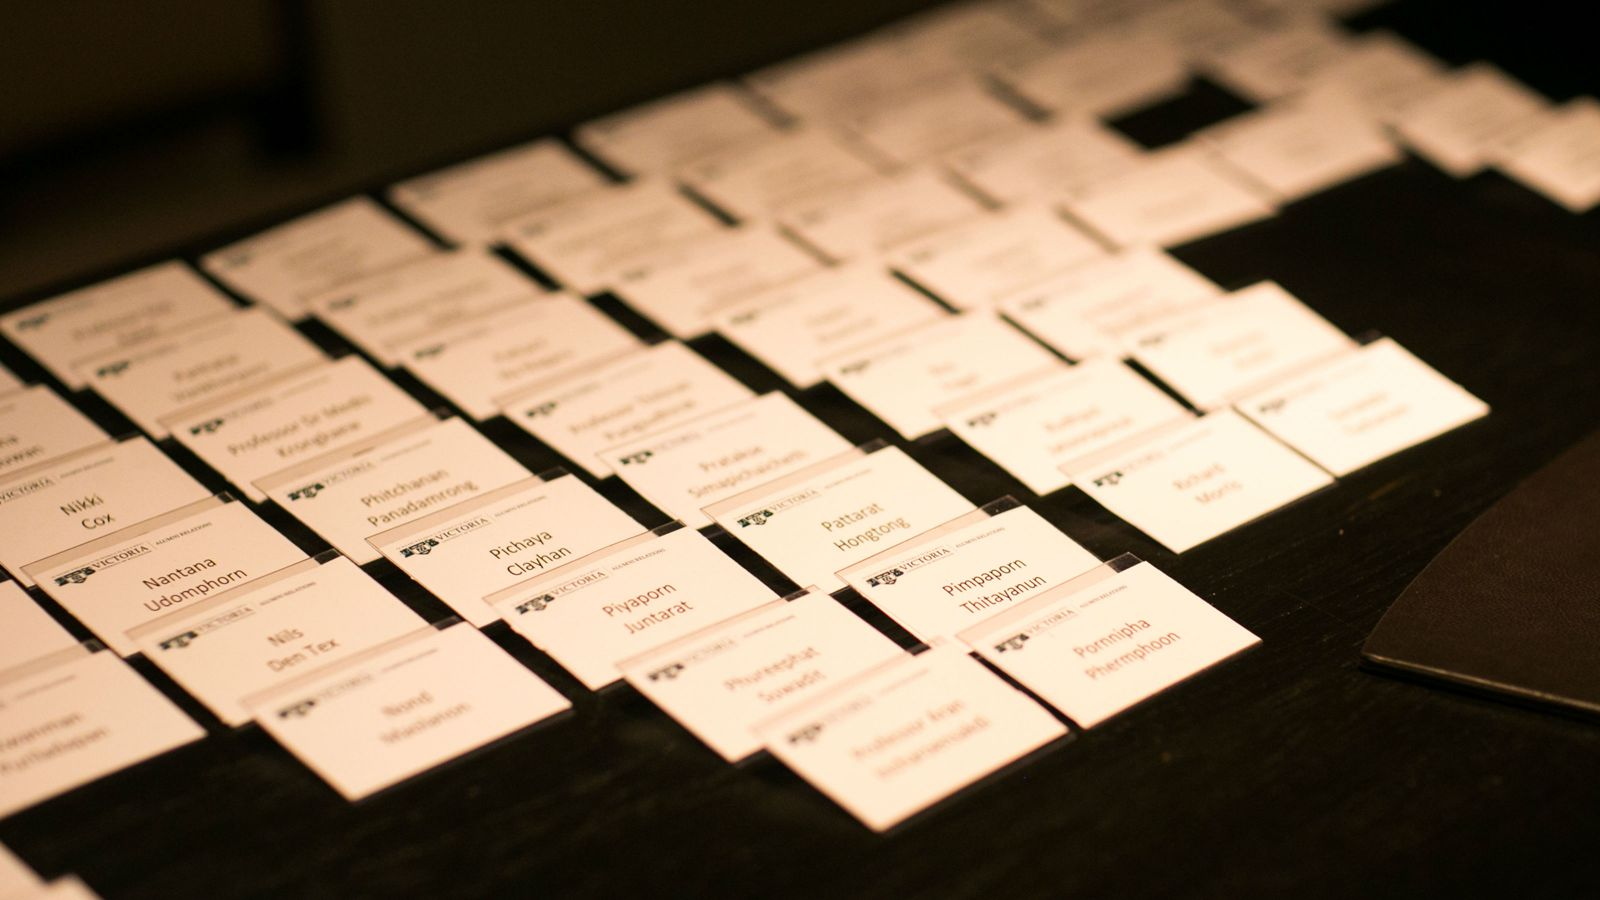 A table with several rows of name tags.